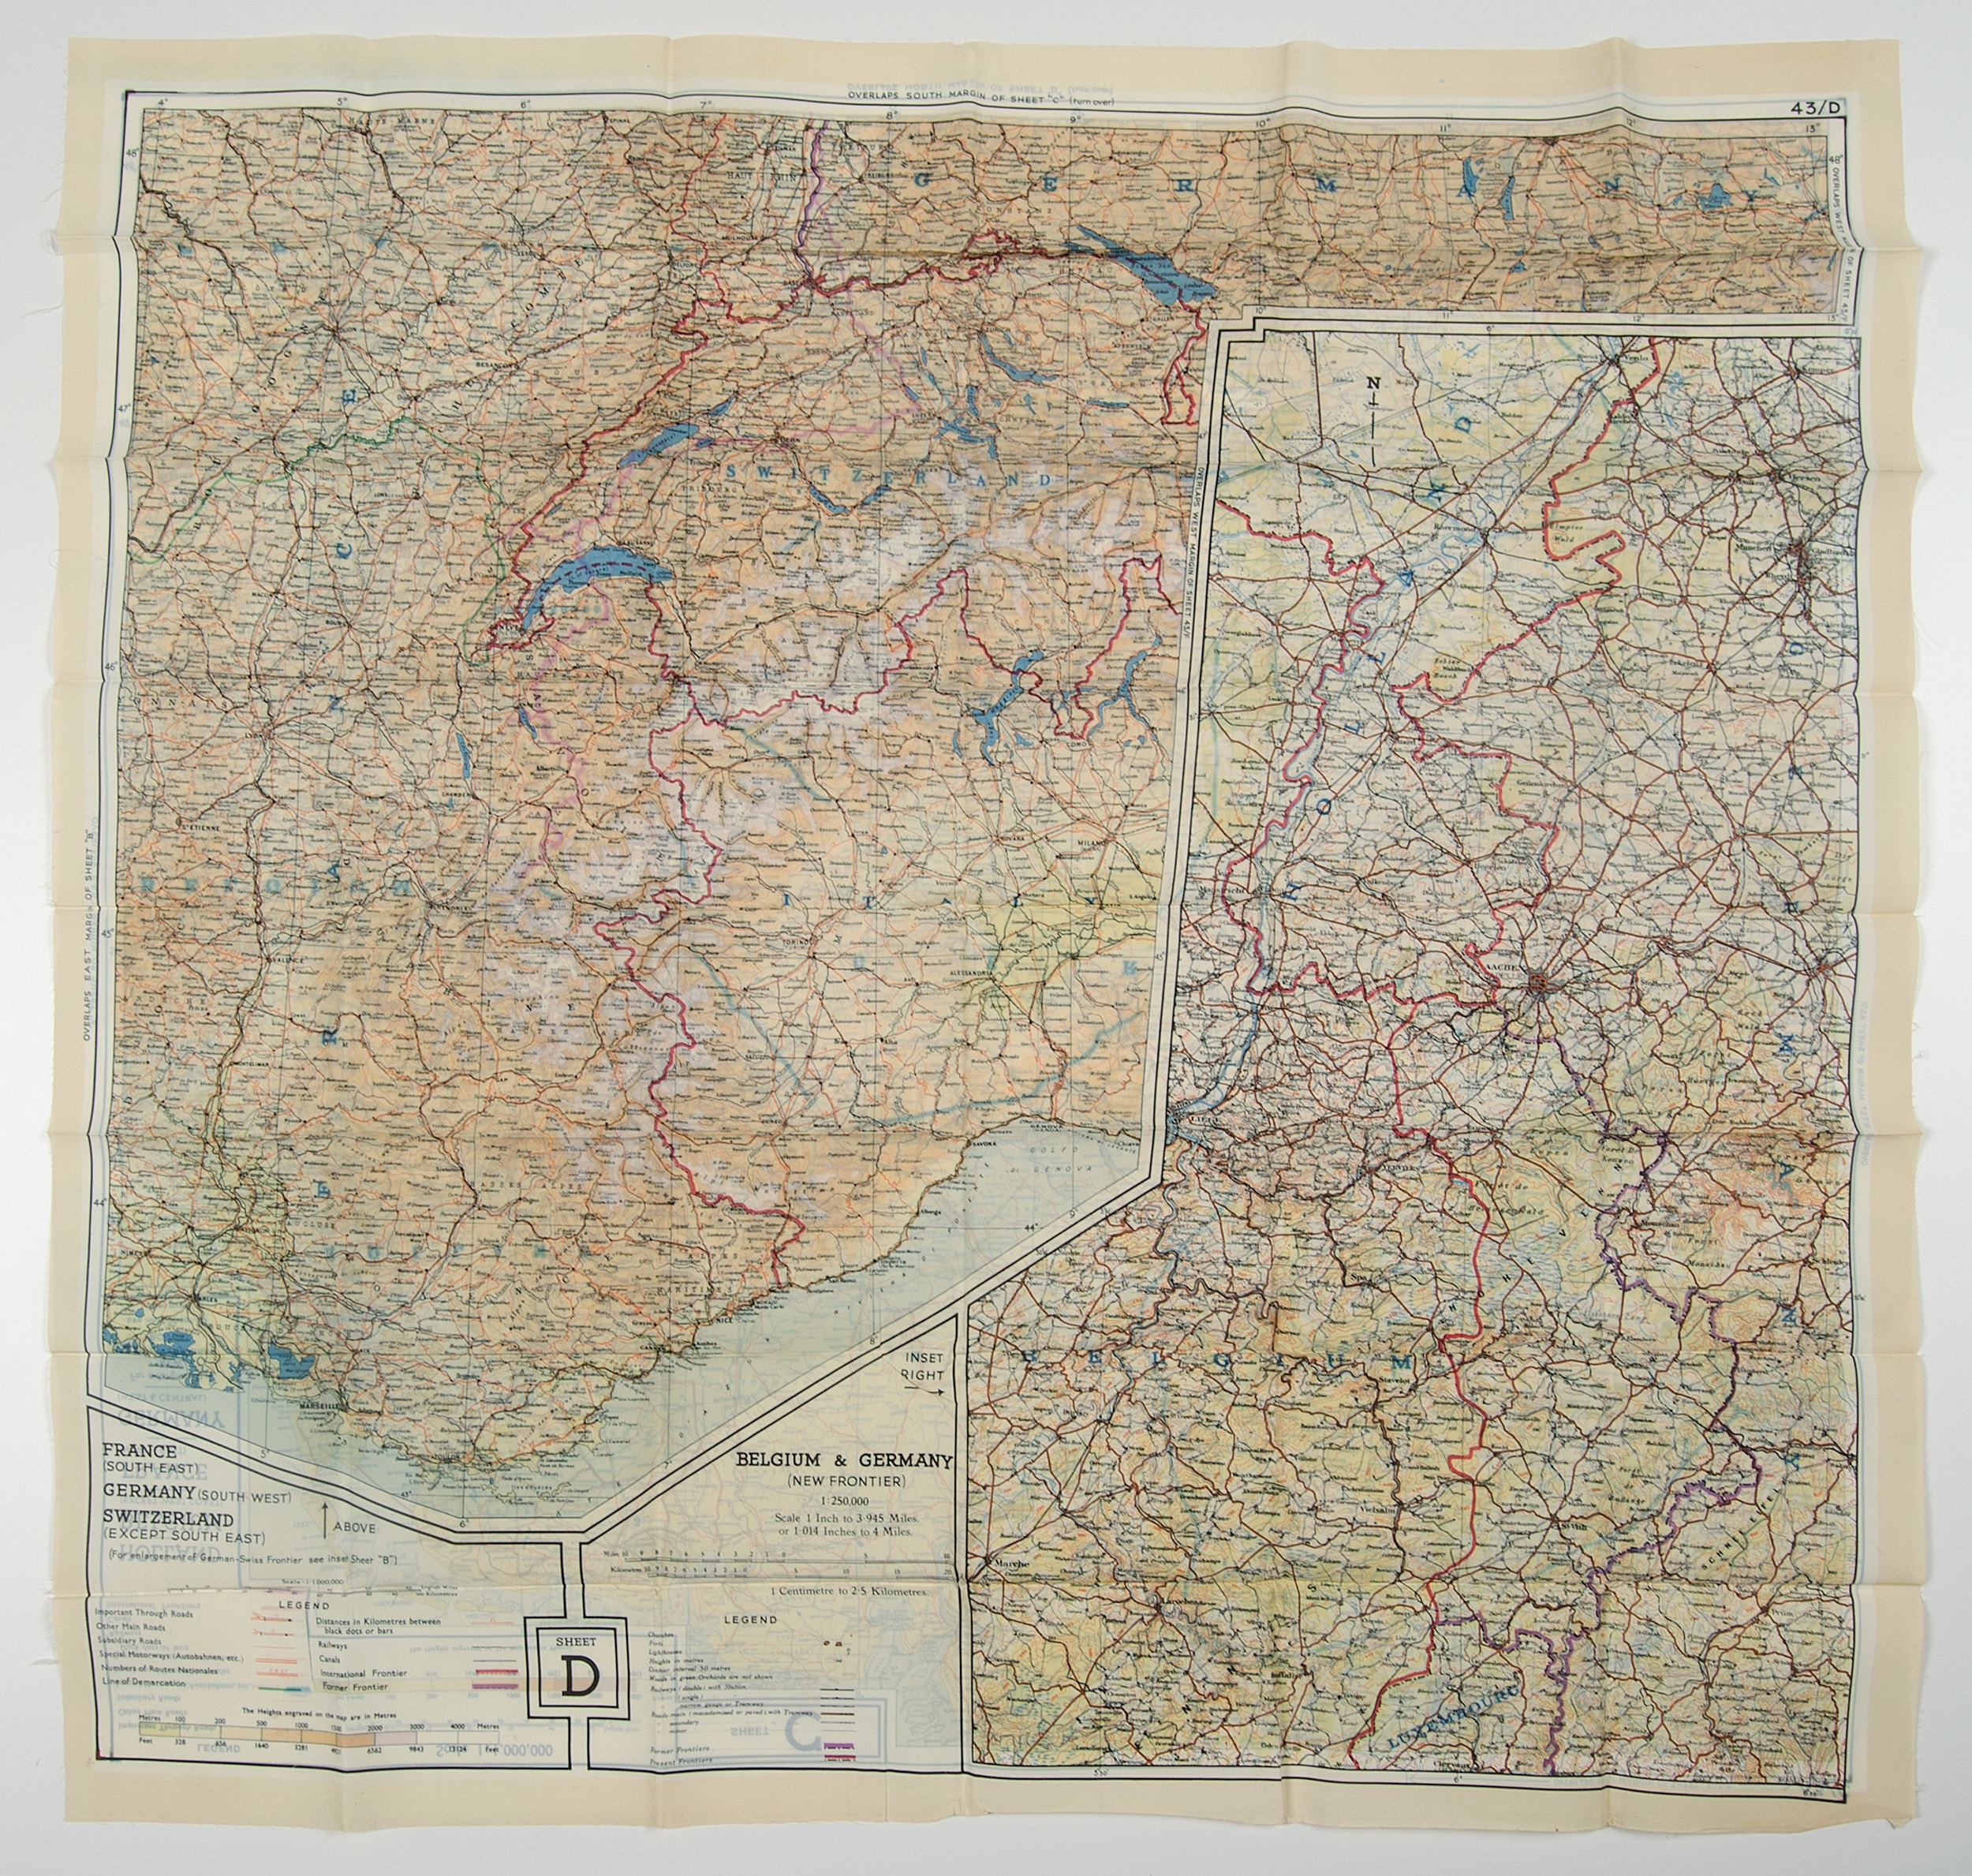 World War Ii Pilot Escape Silk Map, Aerial Pilots Maps, And More intended for Ww2 German Maps For Sale